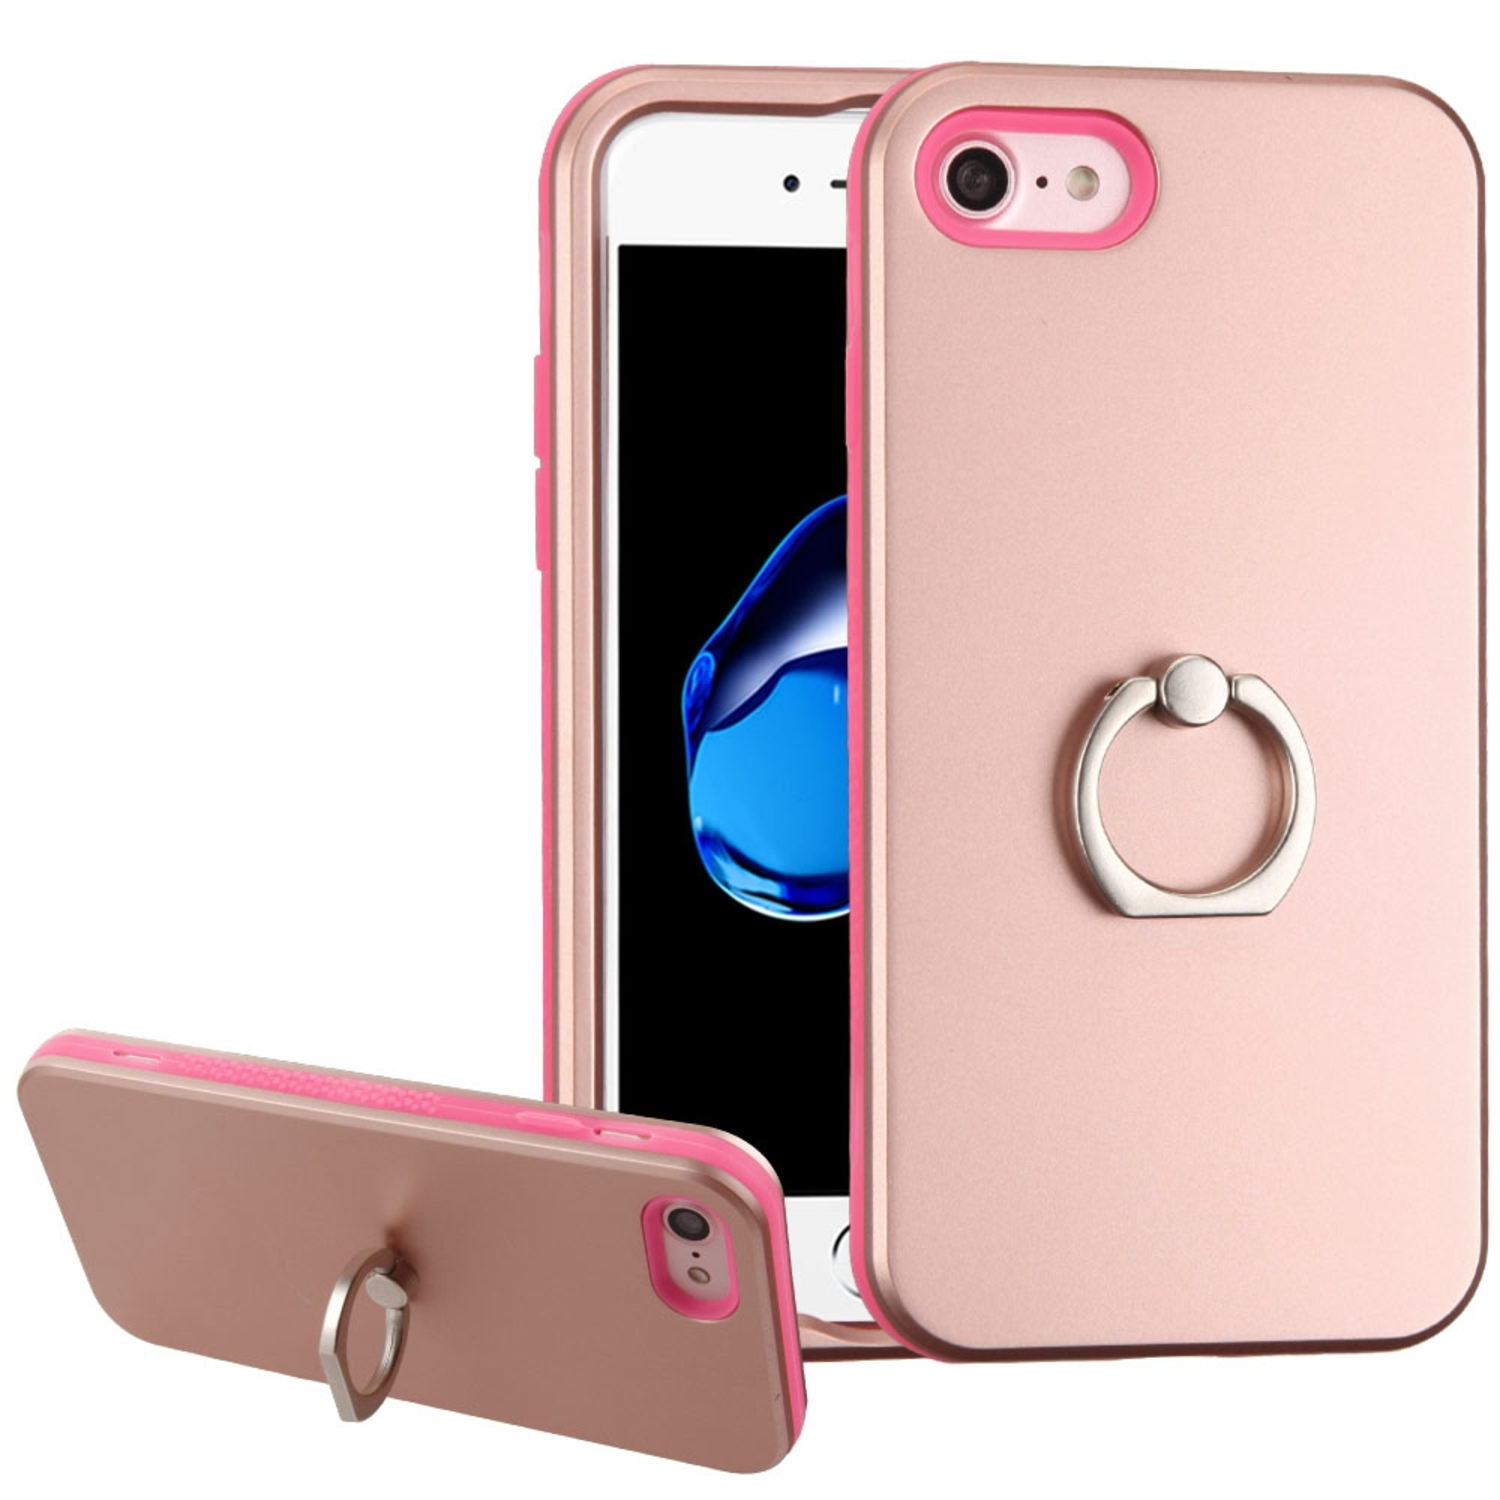 Insten Hard Hybrid Rubber Silicone Case ( with Ring Stand ) For Apple iPhone 8 / iPhone 7 - Rose Gold/Pink